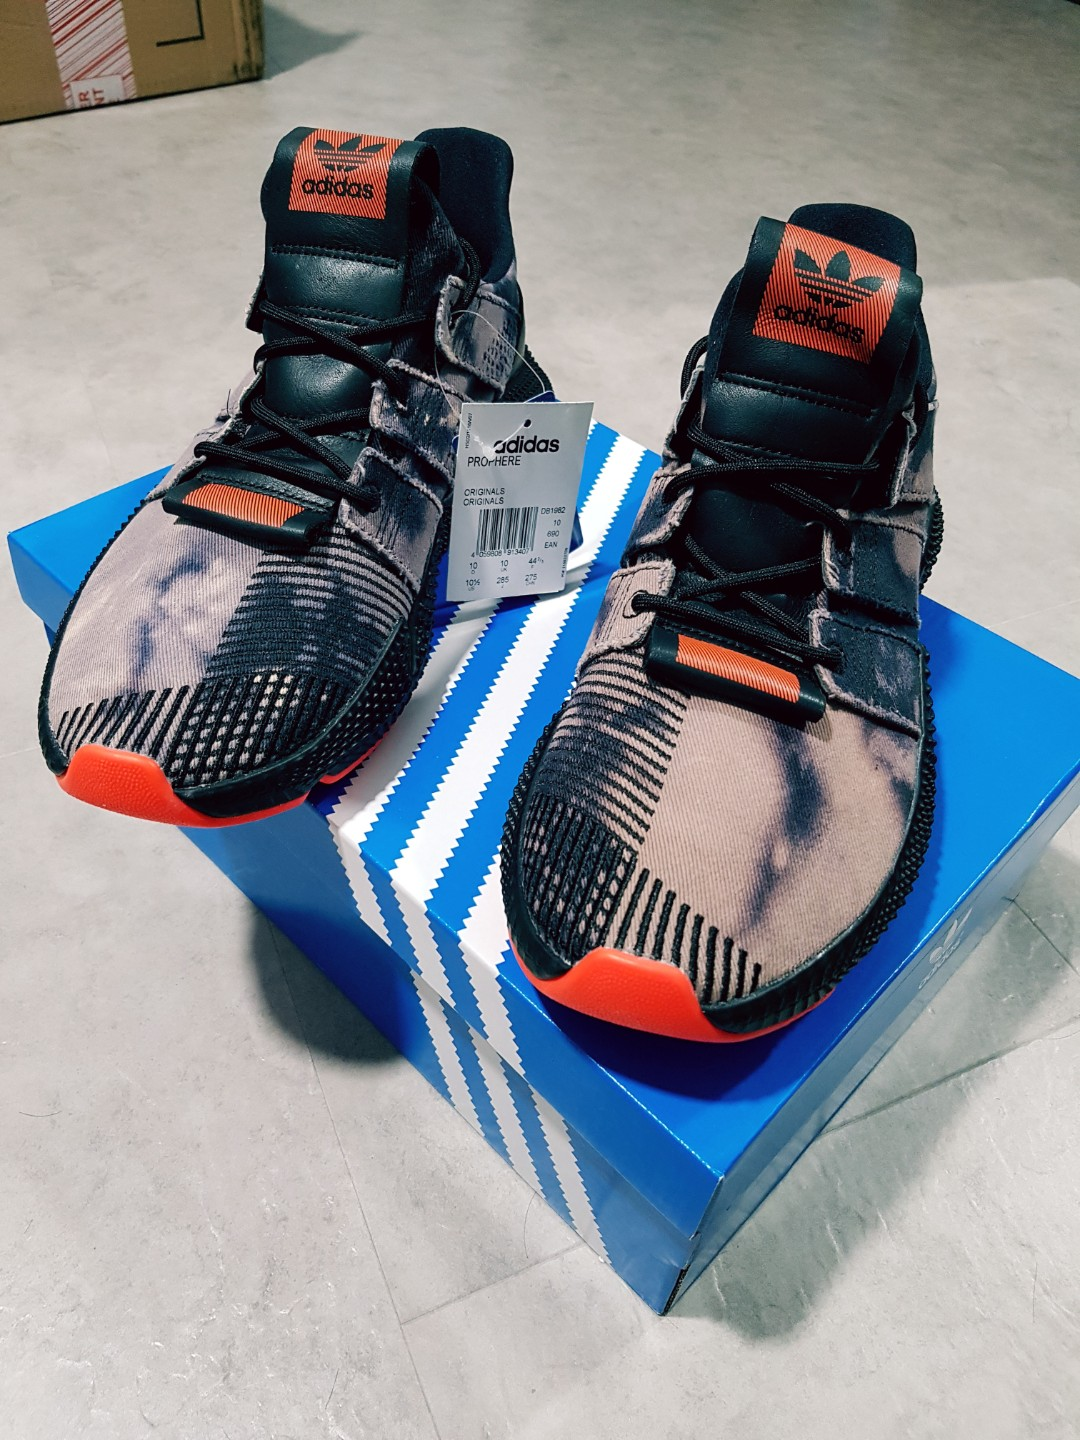 74e1b9014d22 Adidas Prophere Rogue   Black Solar Red   Distressed   Bleached ...